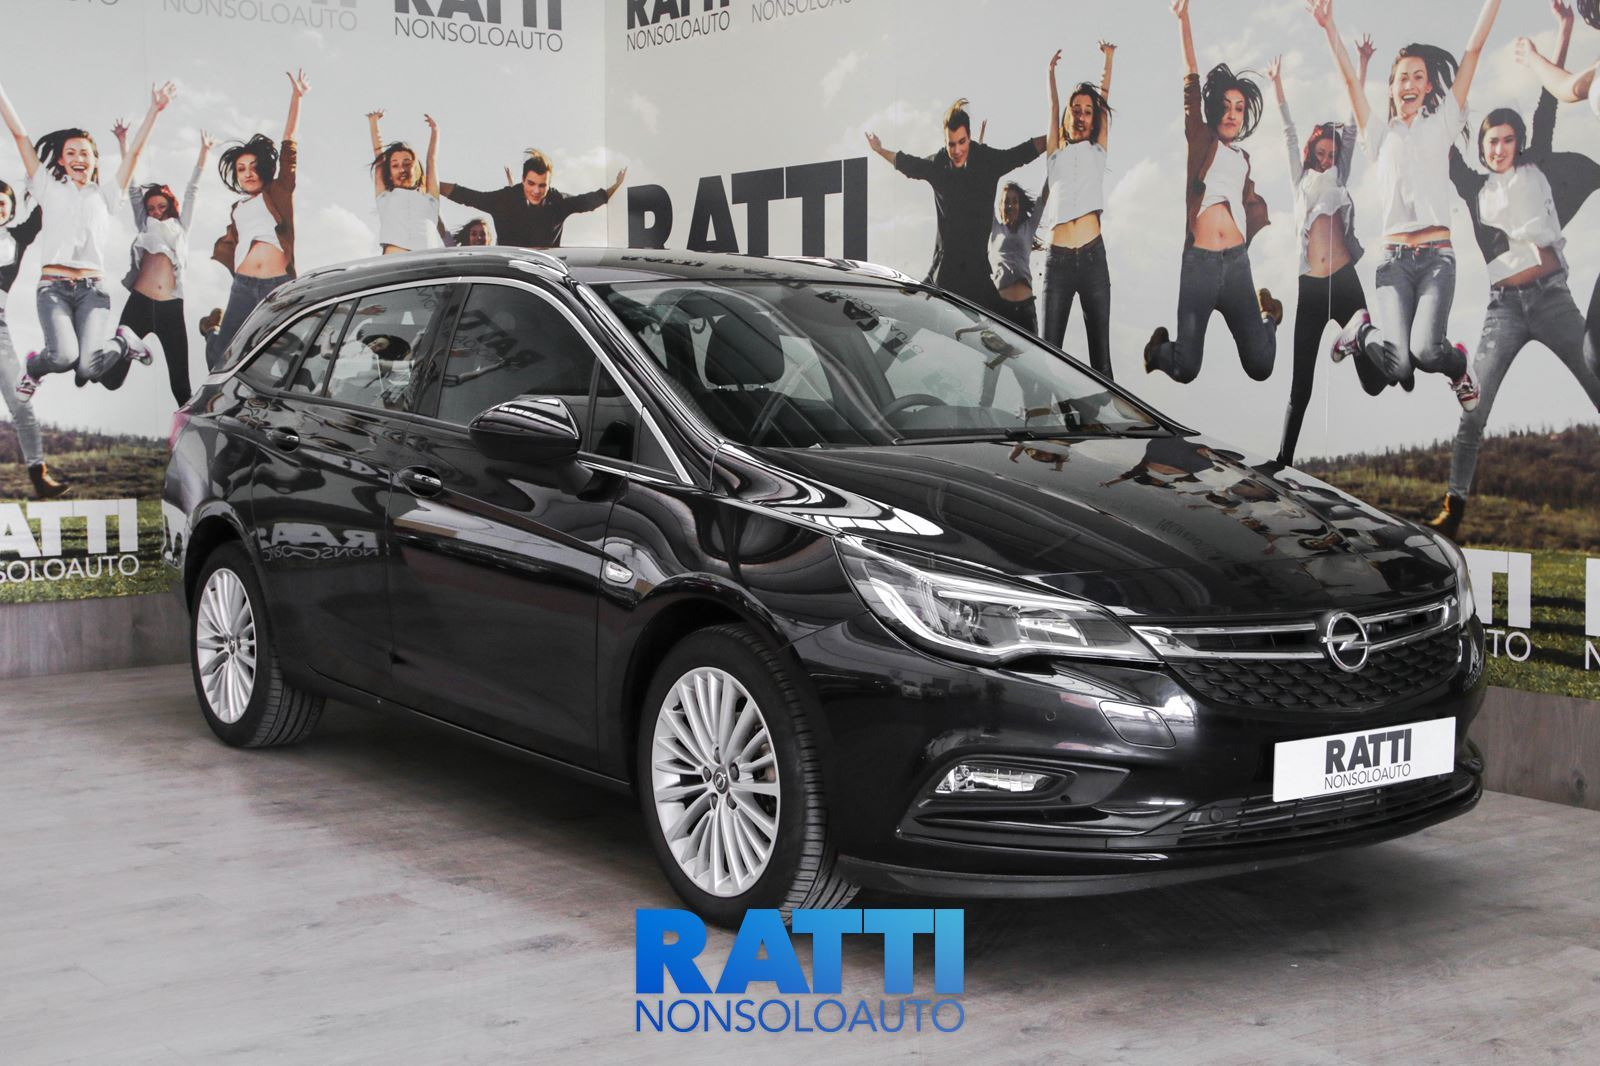 OPEL Astra 1.6MDE 110CV Sports Tourer Innovation DARKMOON BLUE METAL  cambio Manuale Diesel Aziendale station wagon 5 porte 5 posti EURO 6